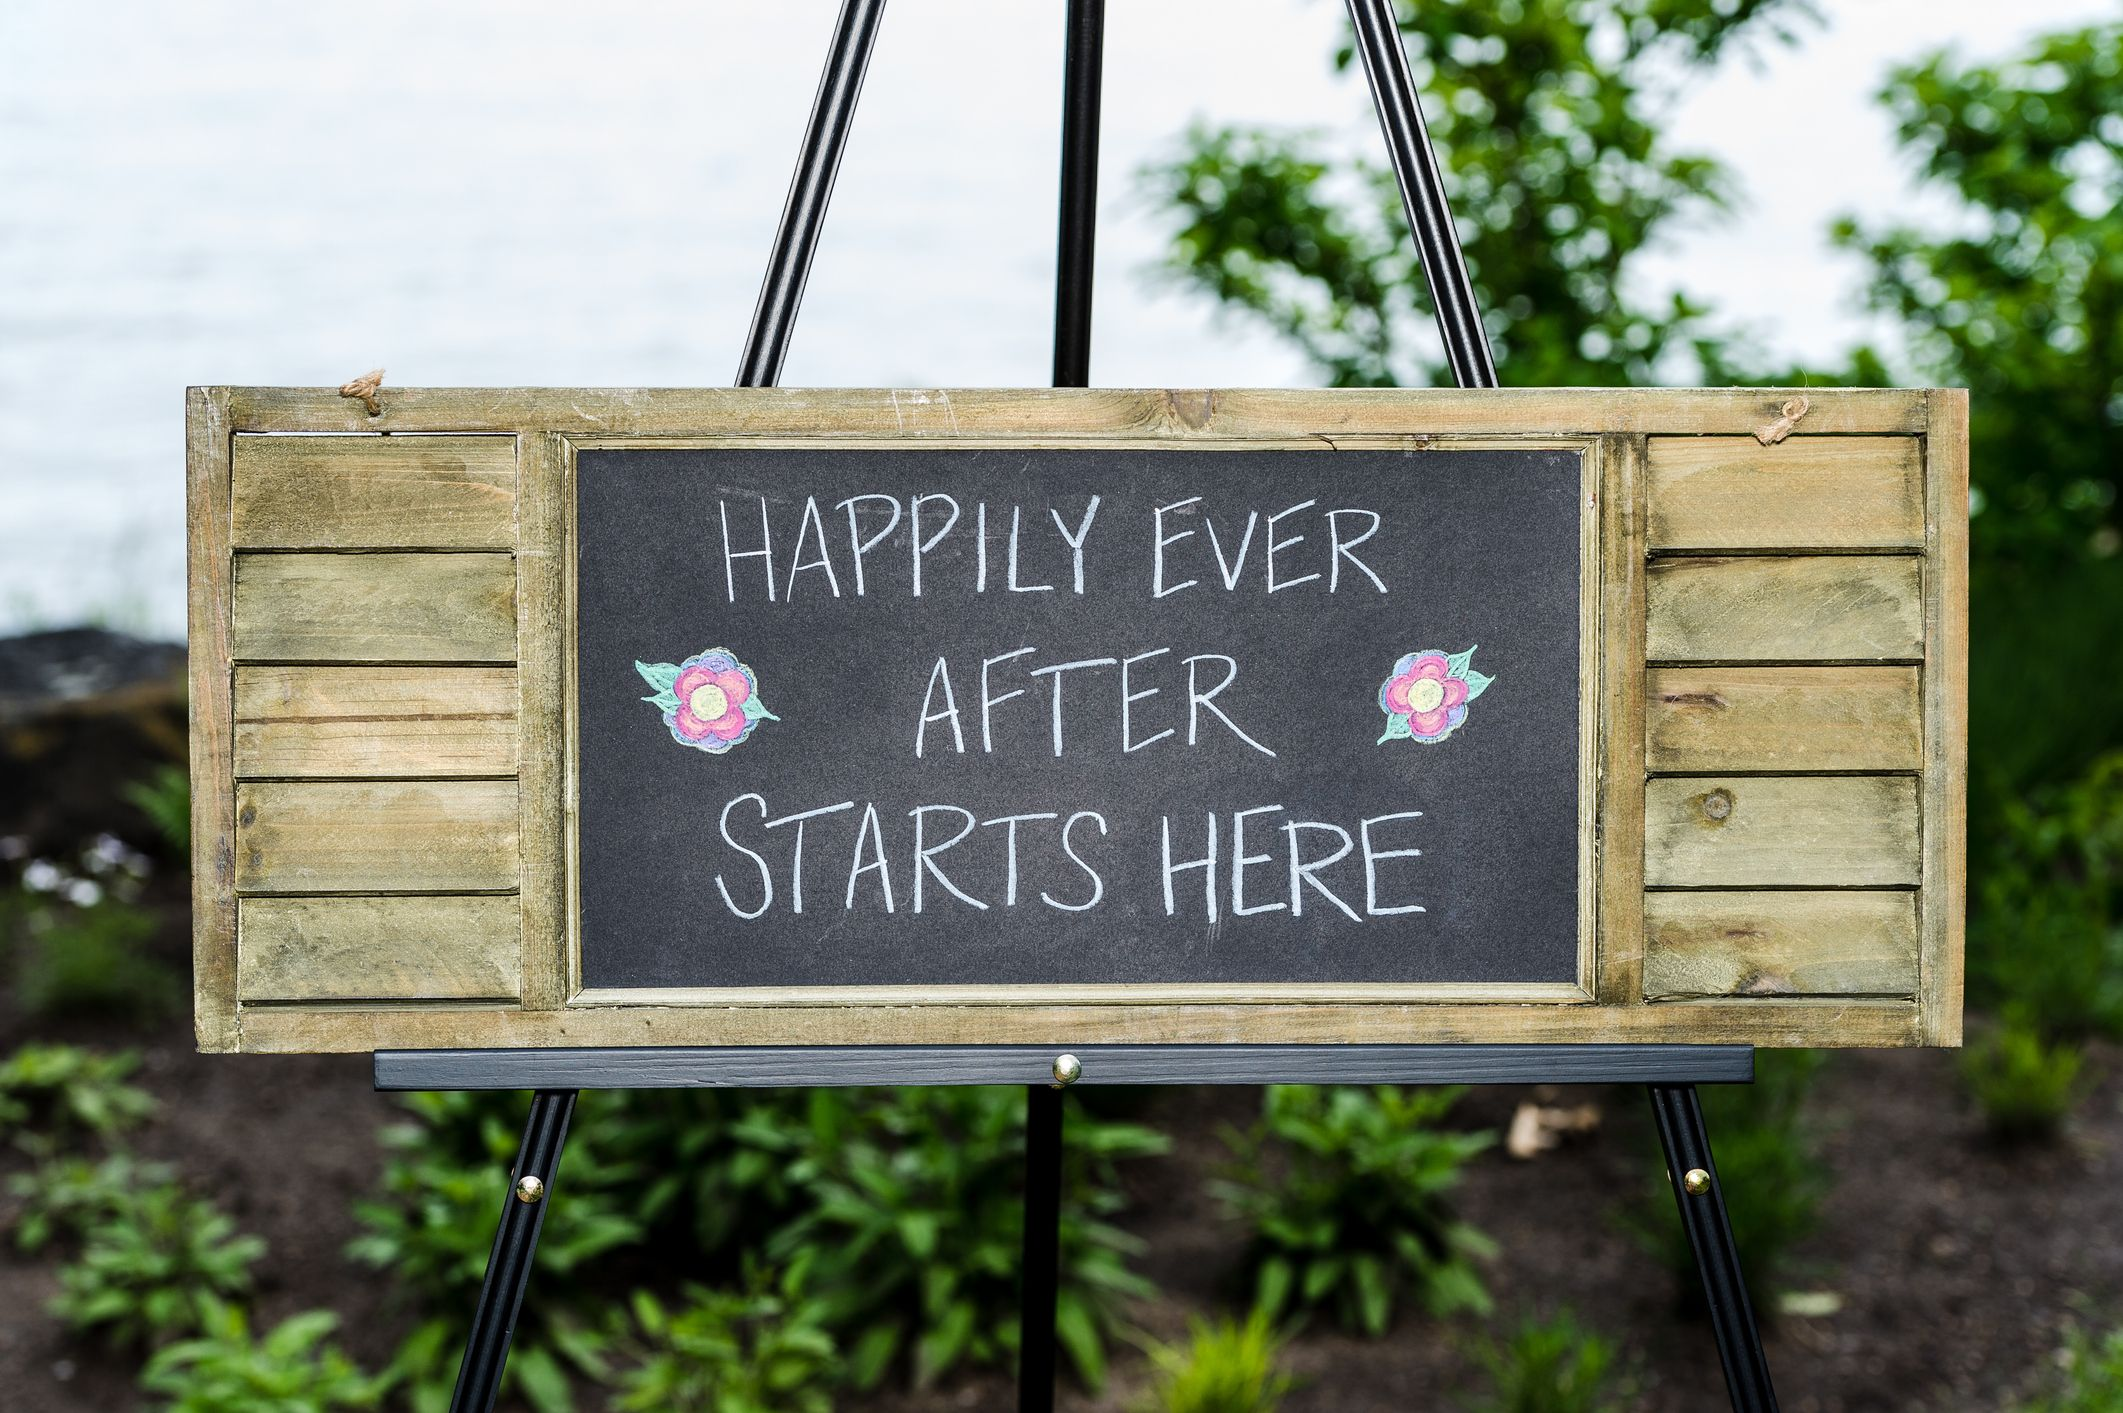 Happily ever after comes from investing in your marriage